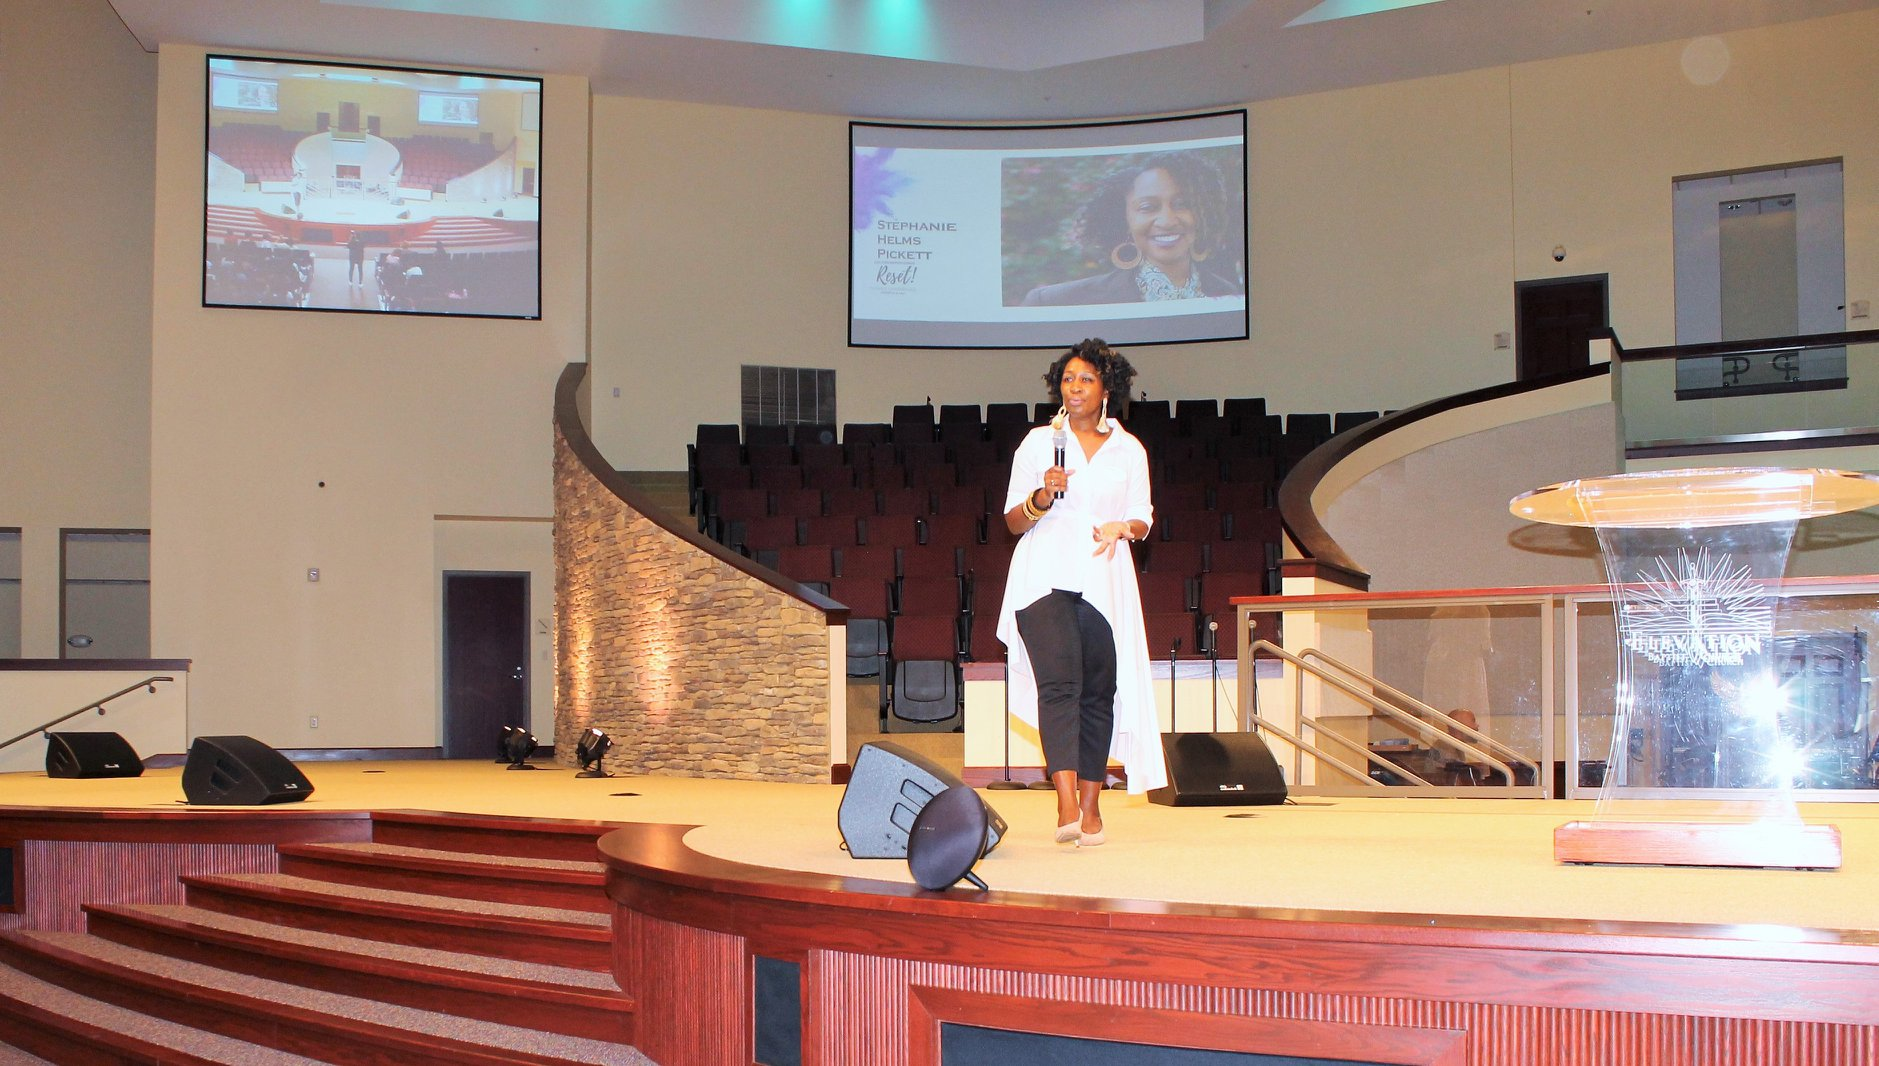 Stephanie Helms Pickett speaking at a women's conference